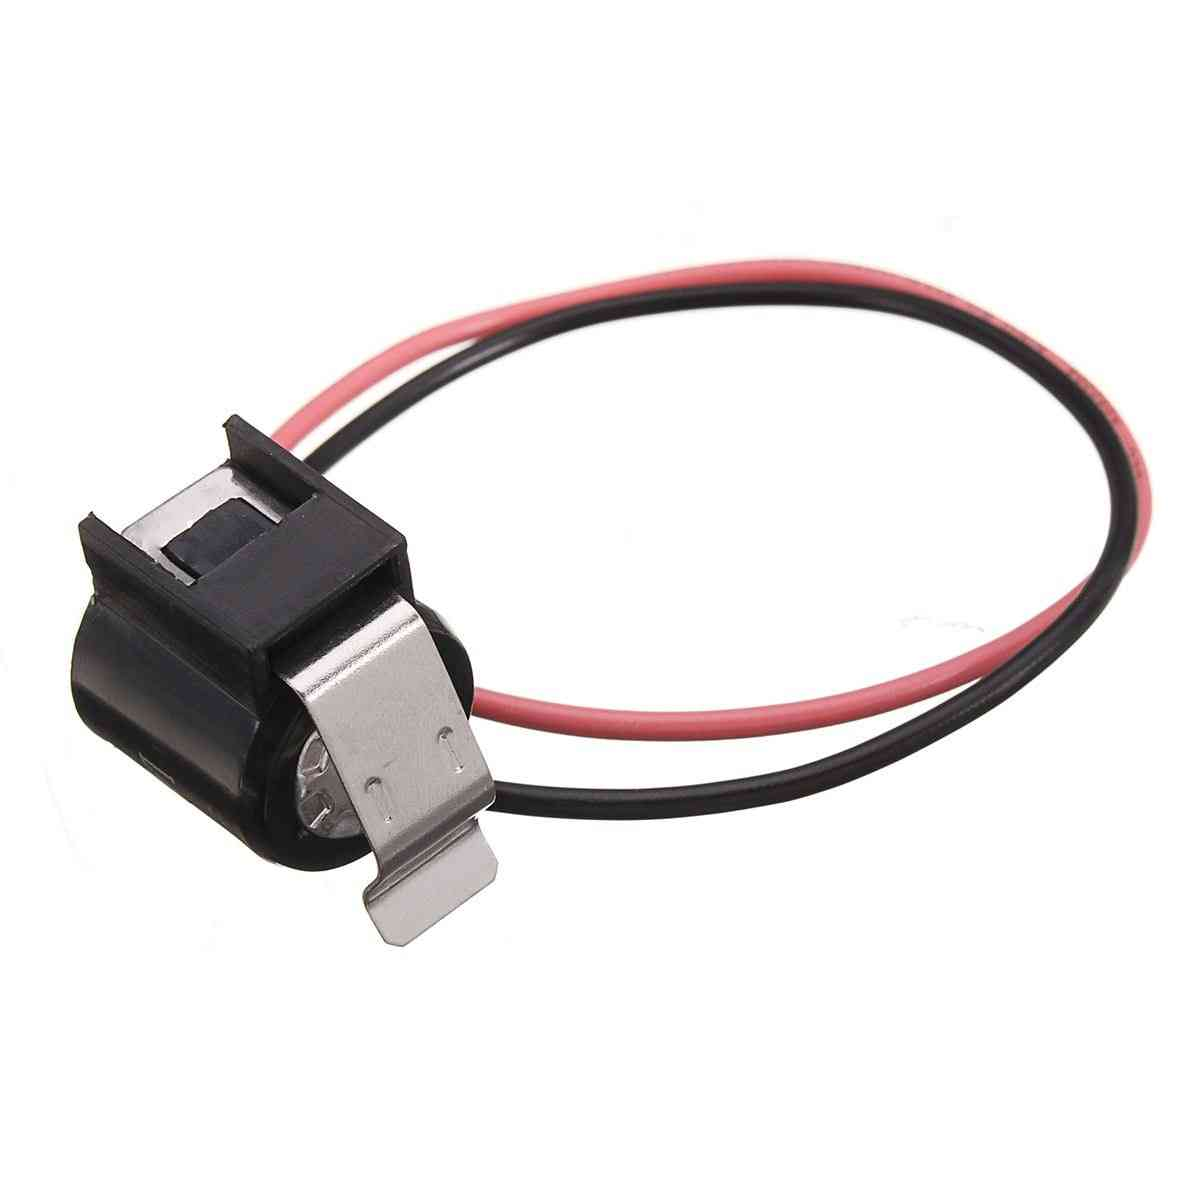 Refrigerator Defrost Thermostat Replacement For Whirlpool